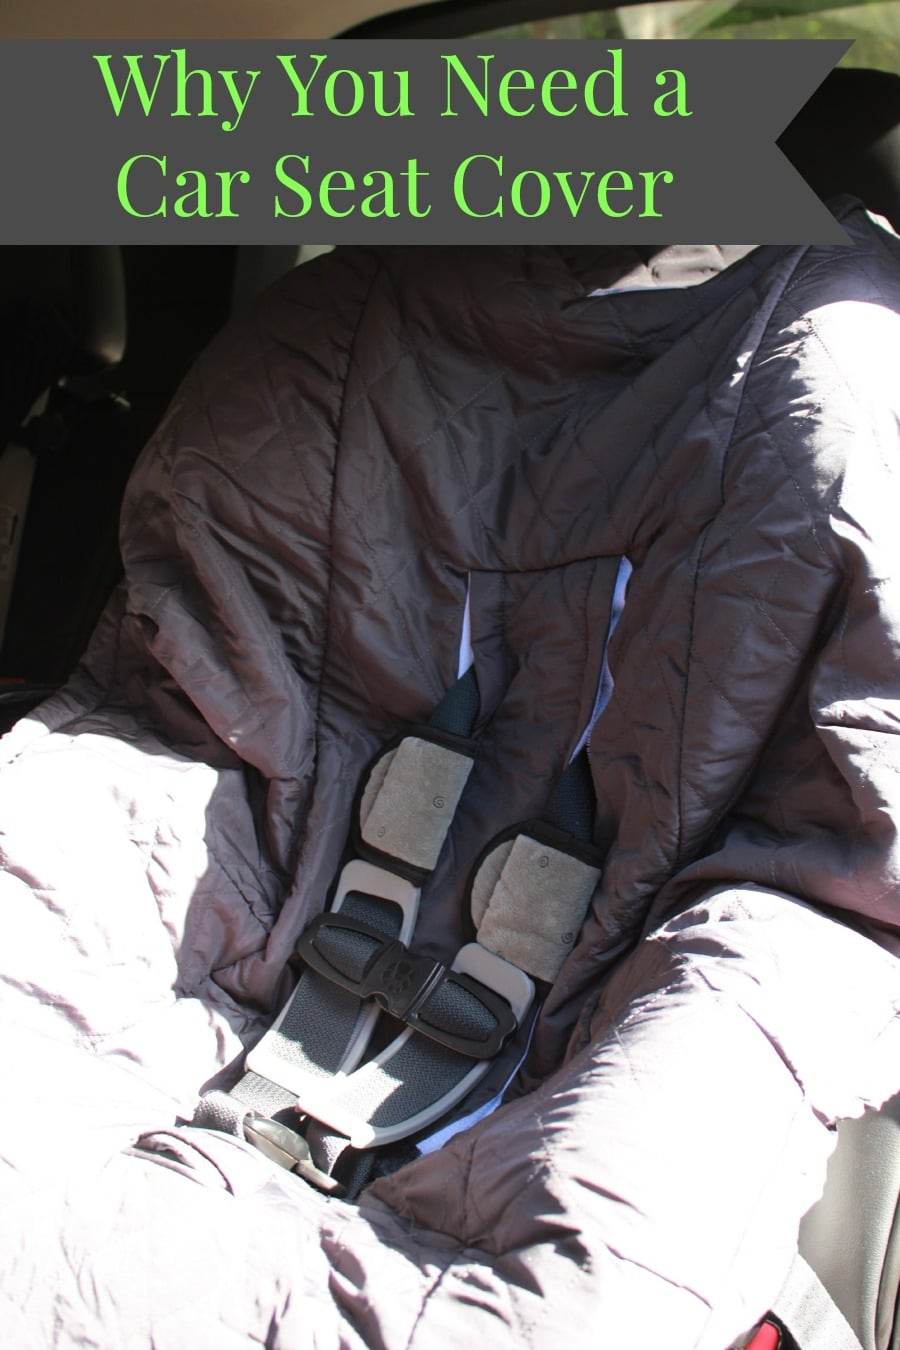 Why You Need a Car Seat Cover